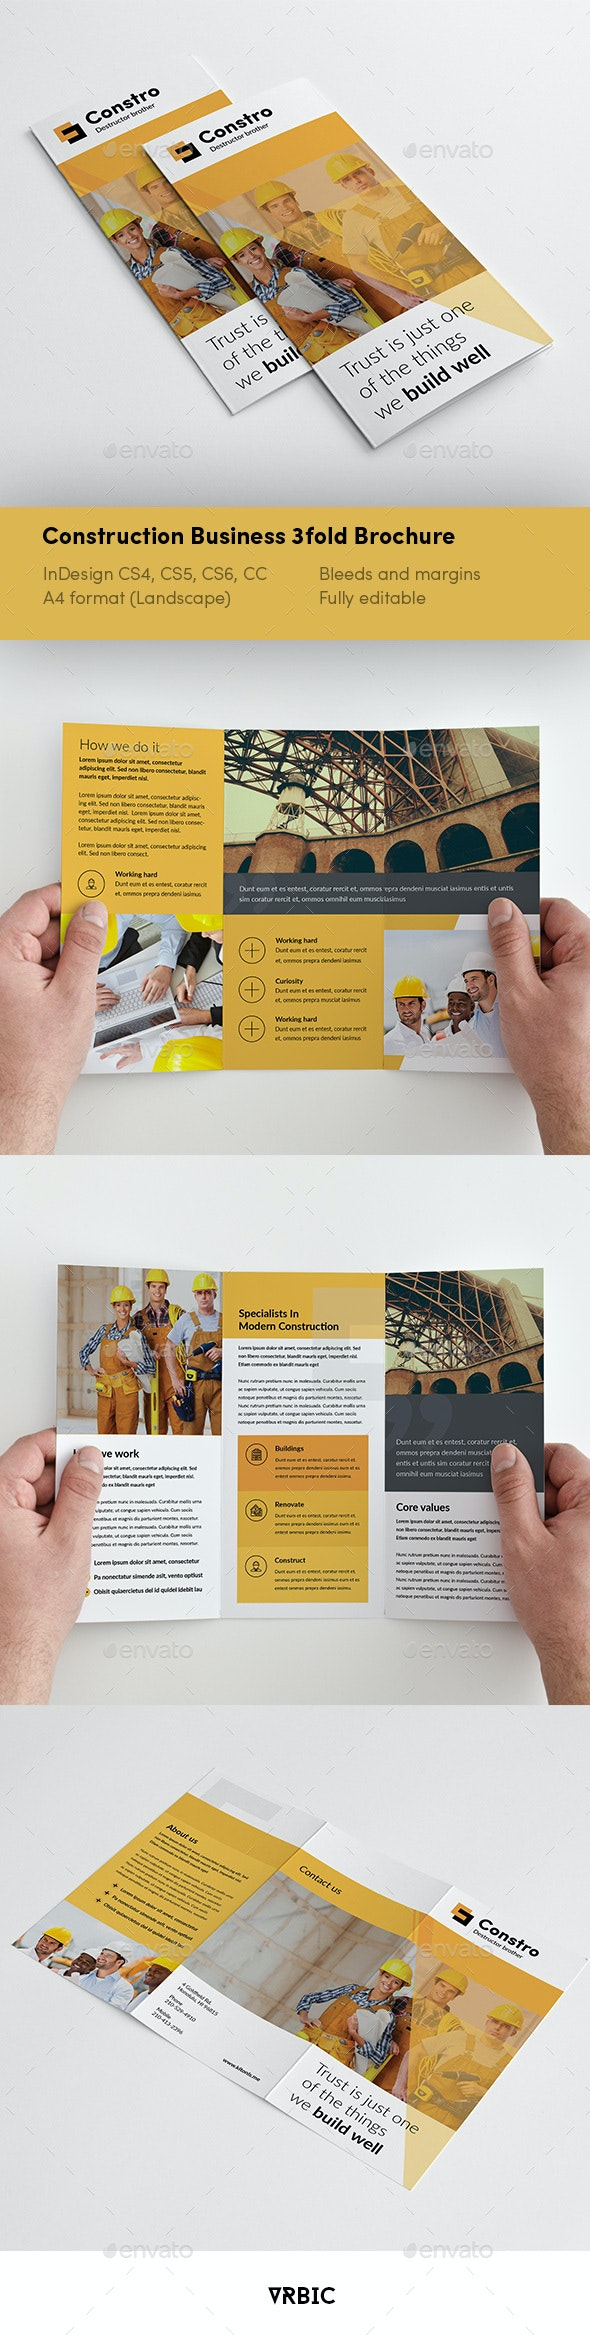 Construction 3 fold Brochure - InDesign Template - Brochures Print Templates